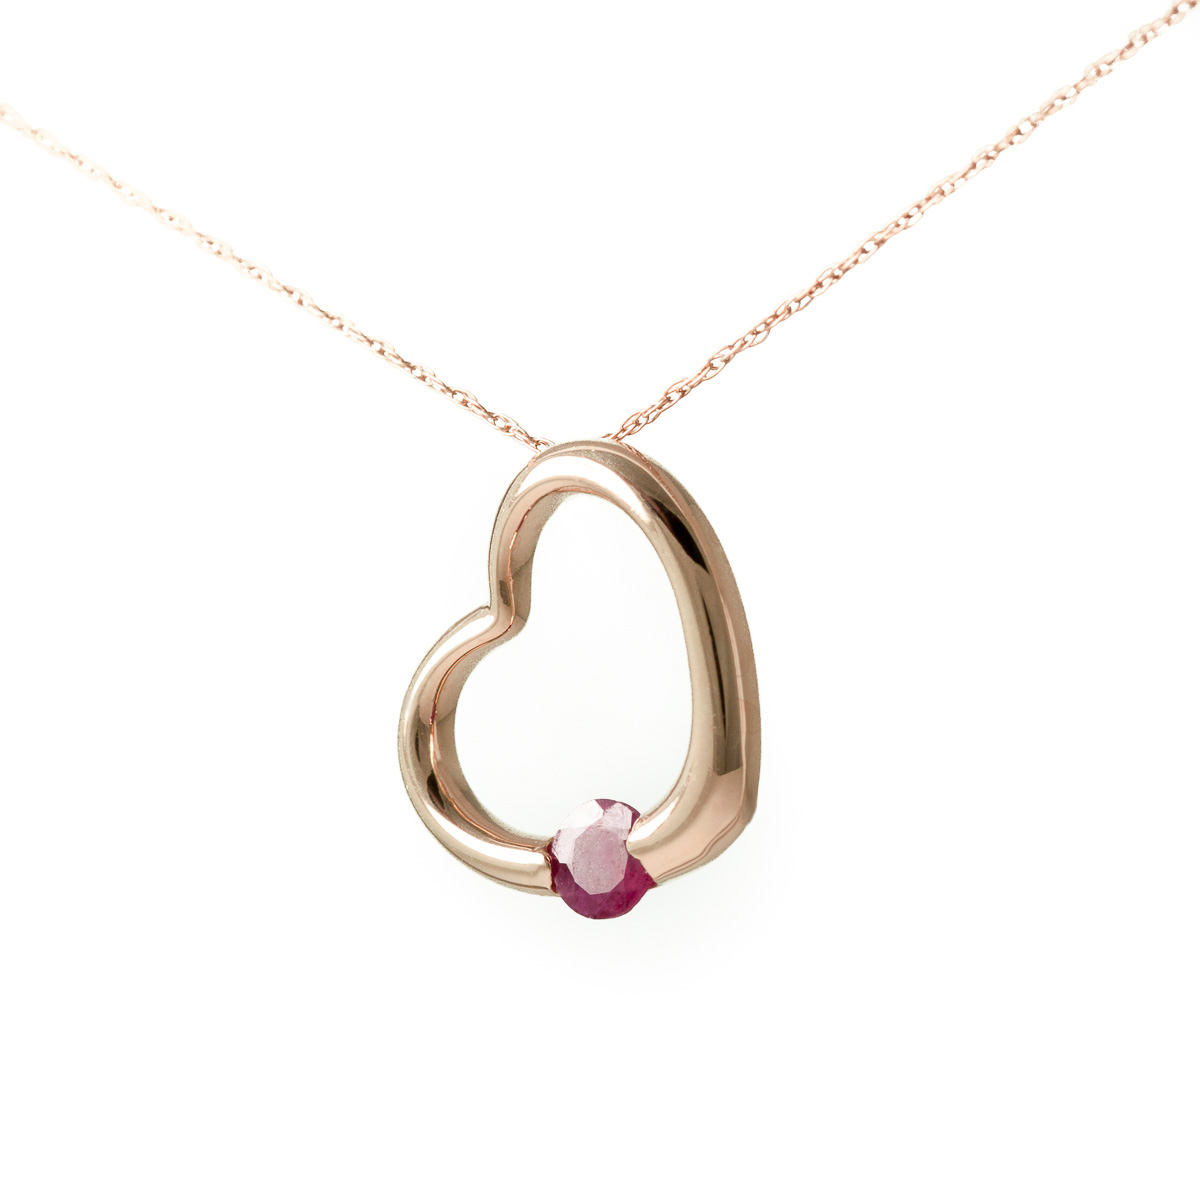 Ruby Heart Pendant Necklace 0.25 ct in 9ct Rose Gold